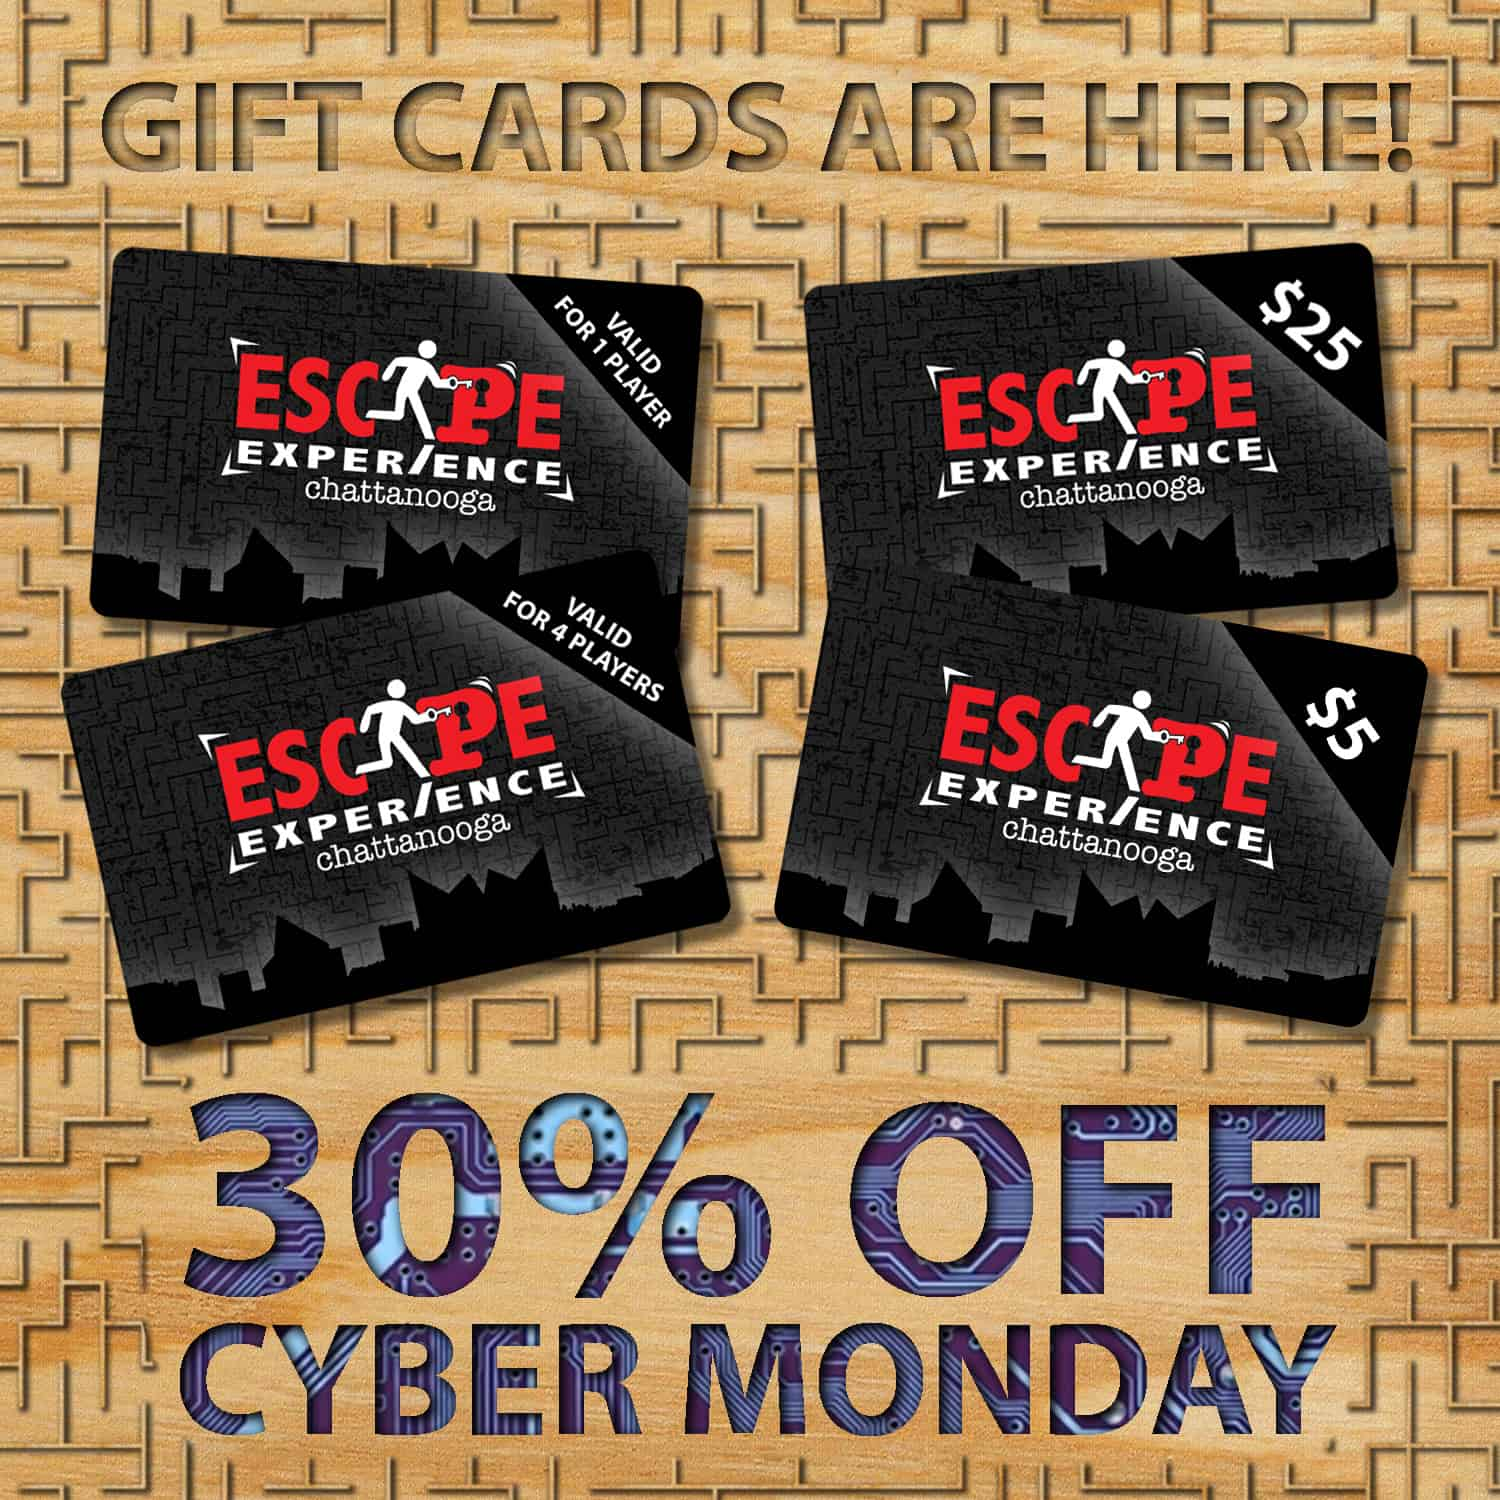 Cyber Monday Gift Card Deal